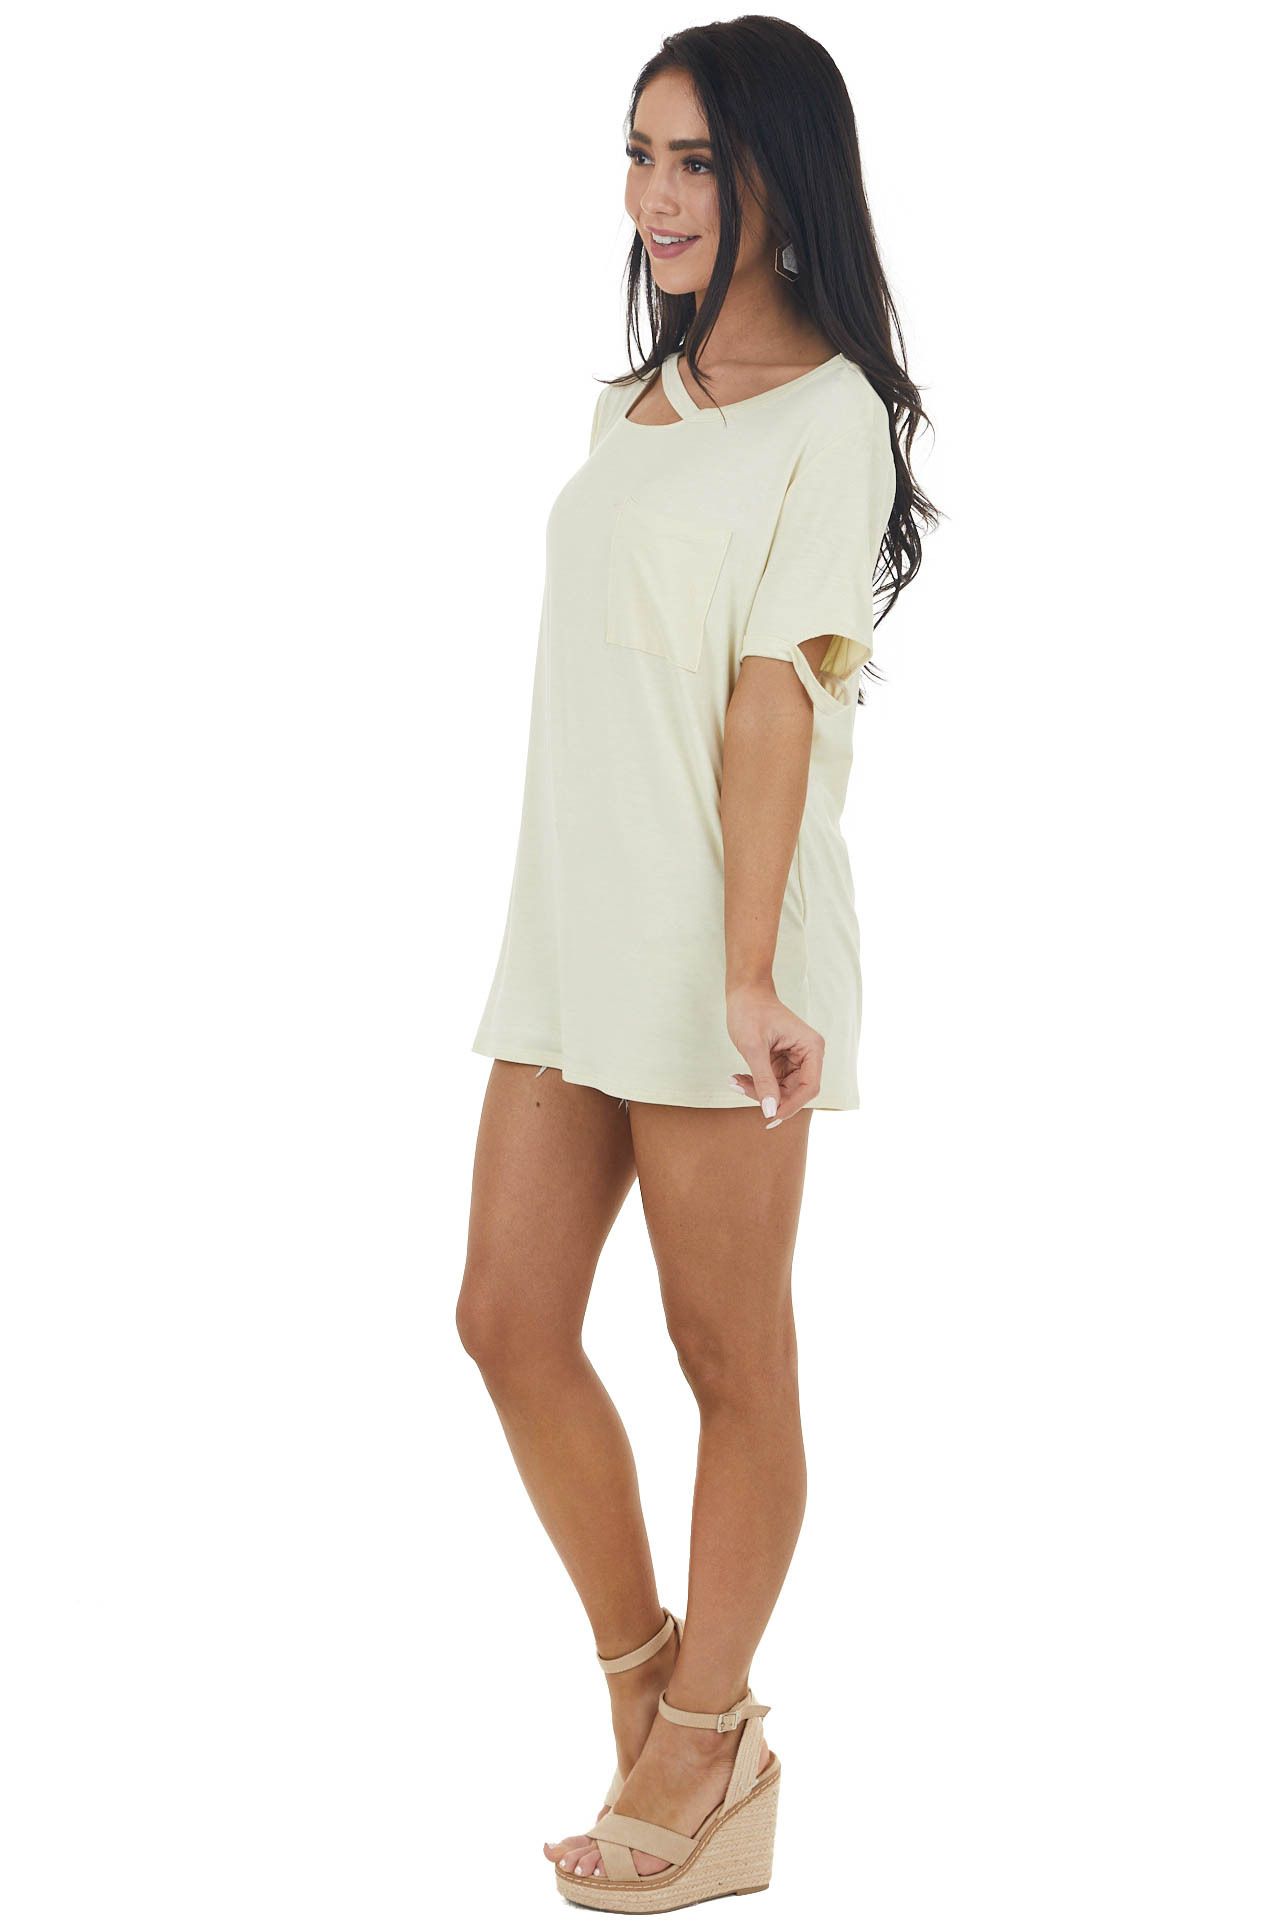 Faded Banana Short Sleeve Cut Out Knit Tee with Chest Pocket